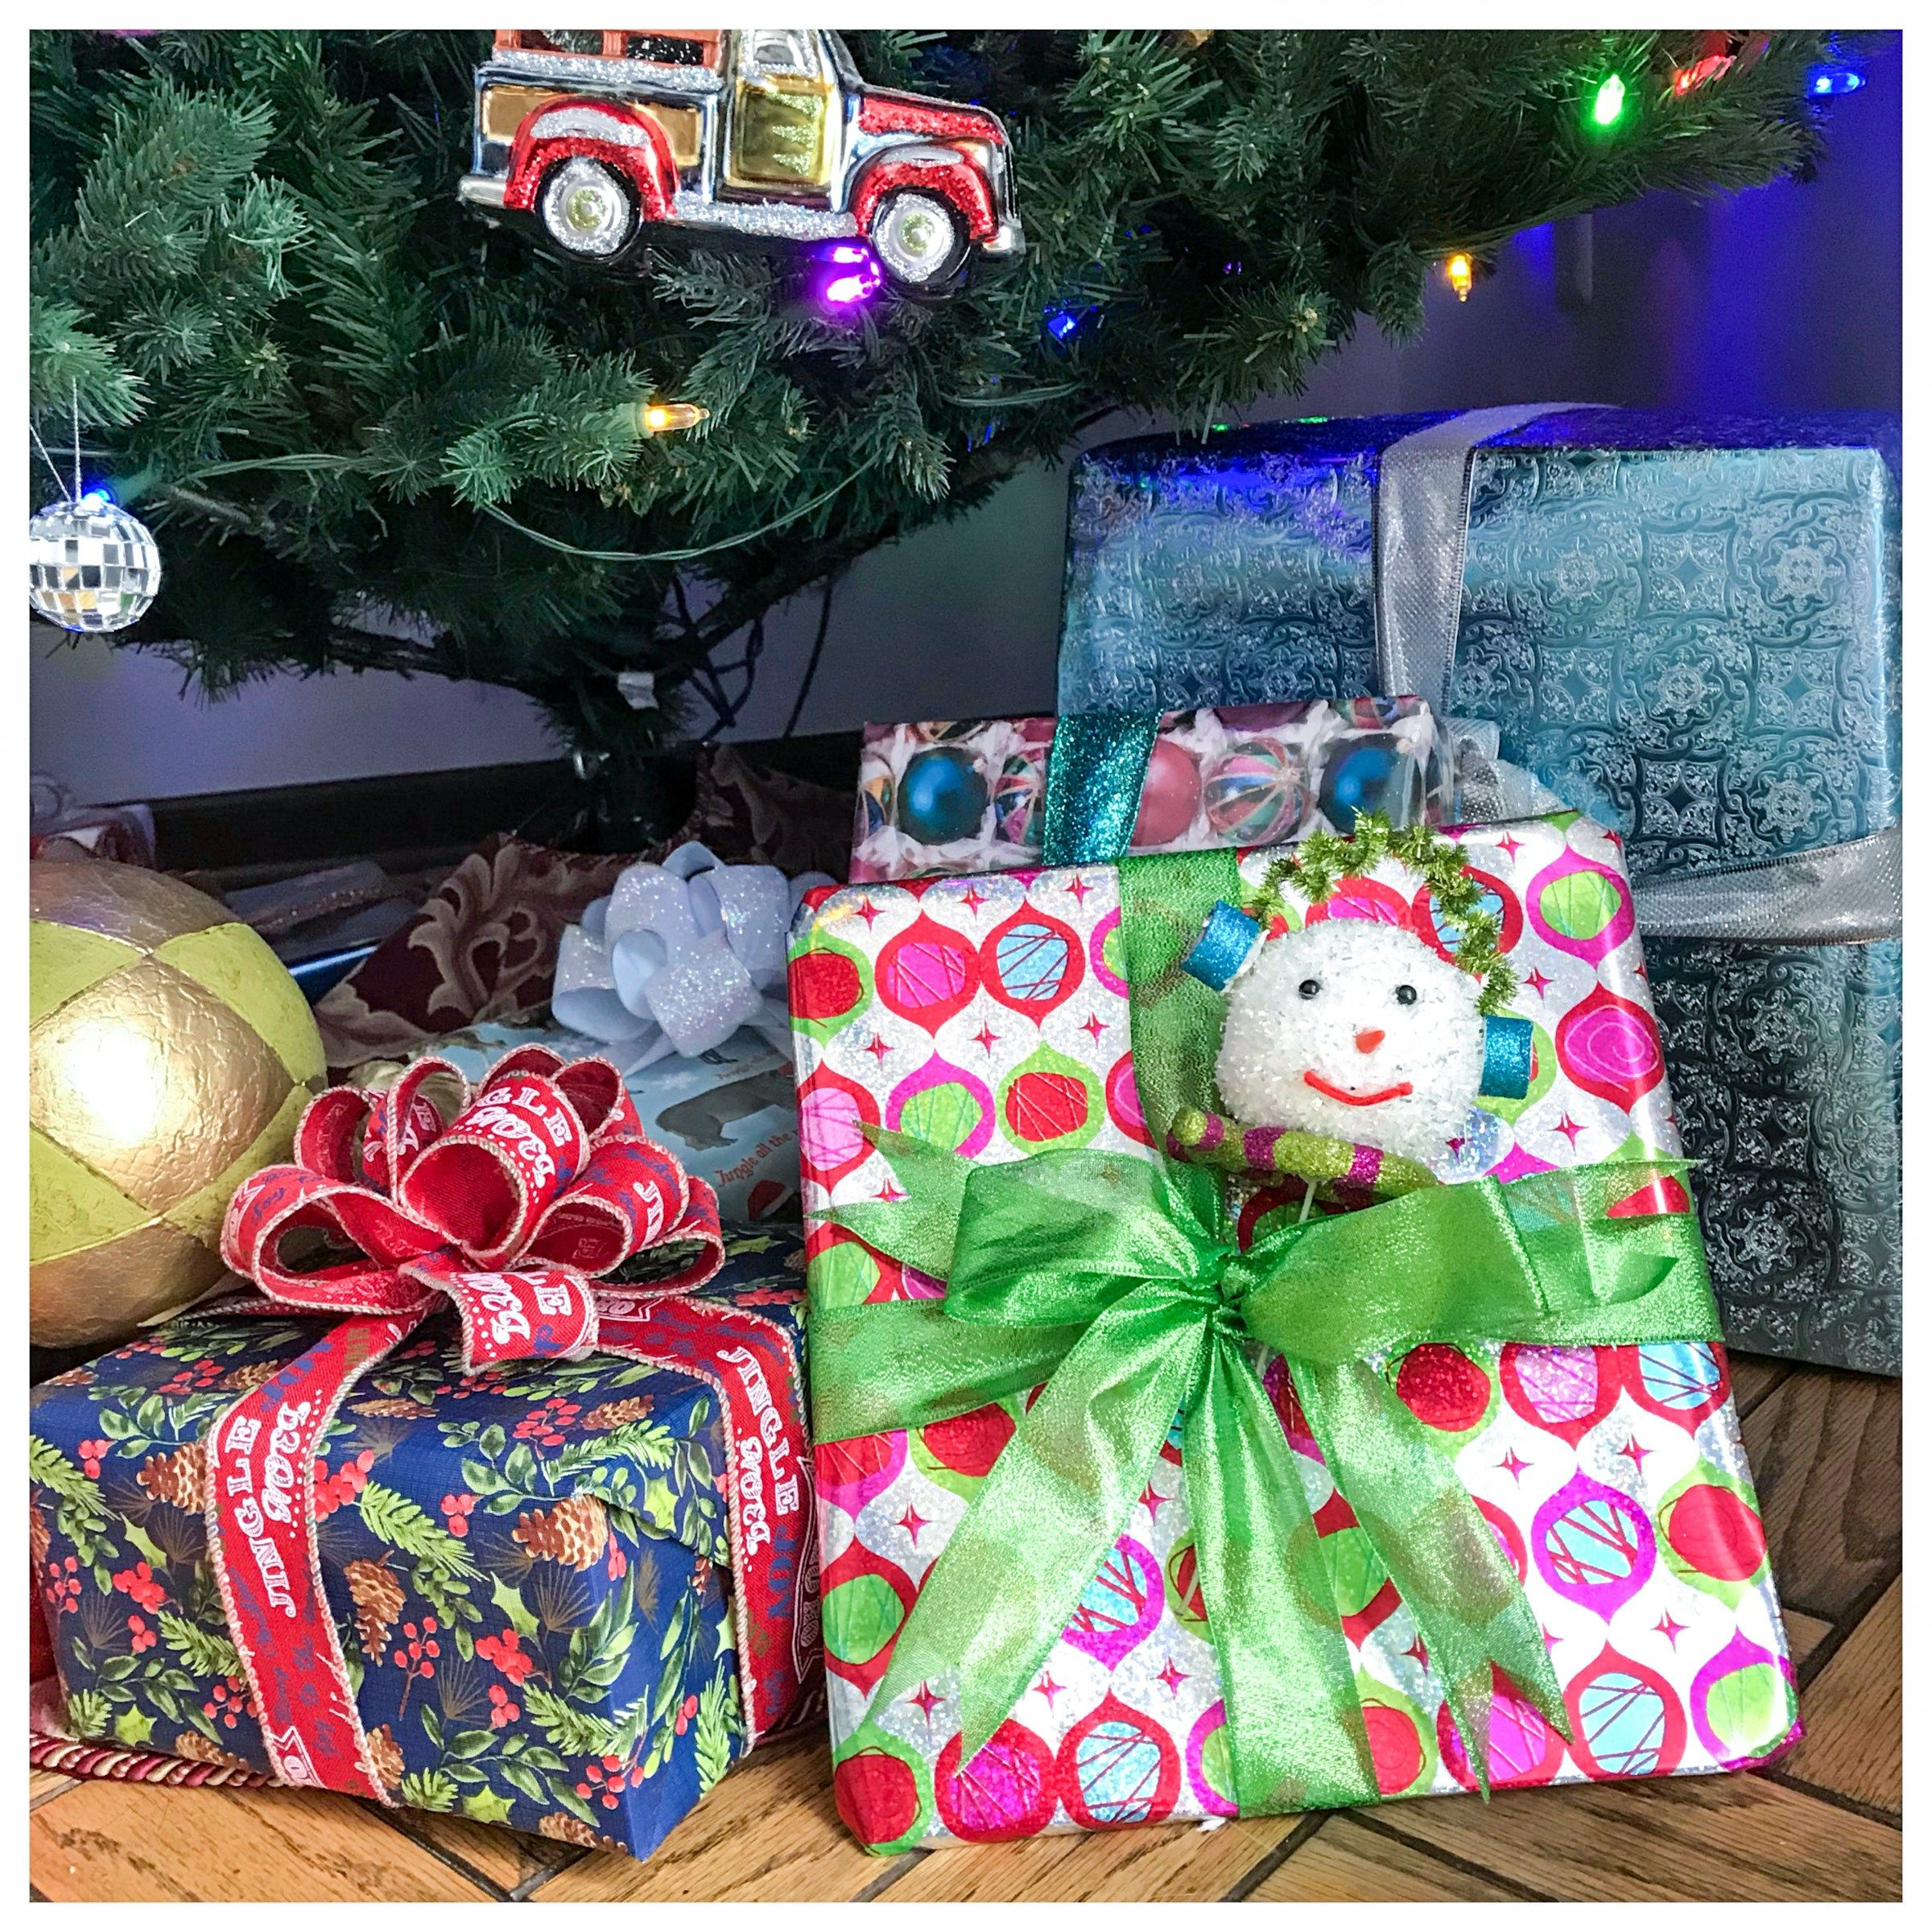 Gift Wrap Ideas Part Two Gift wrapping, Gifts, Wraps